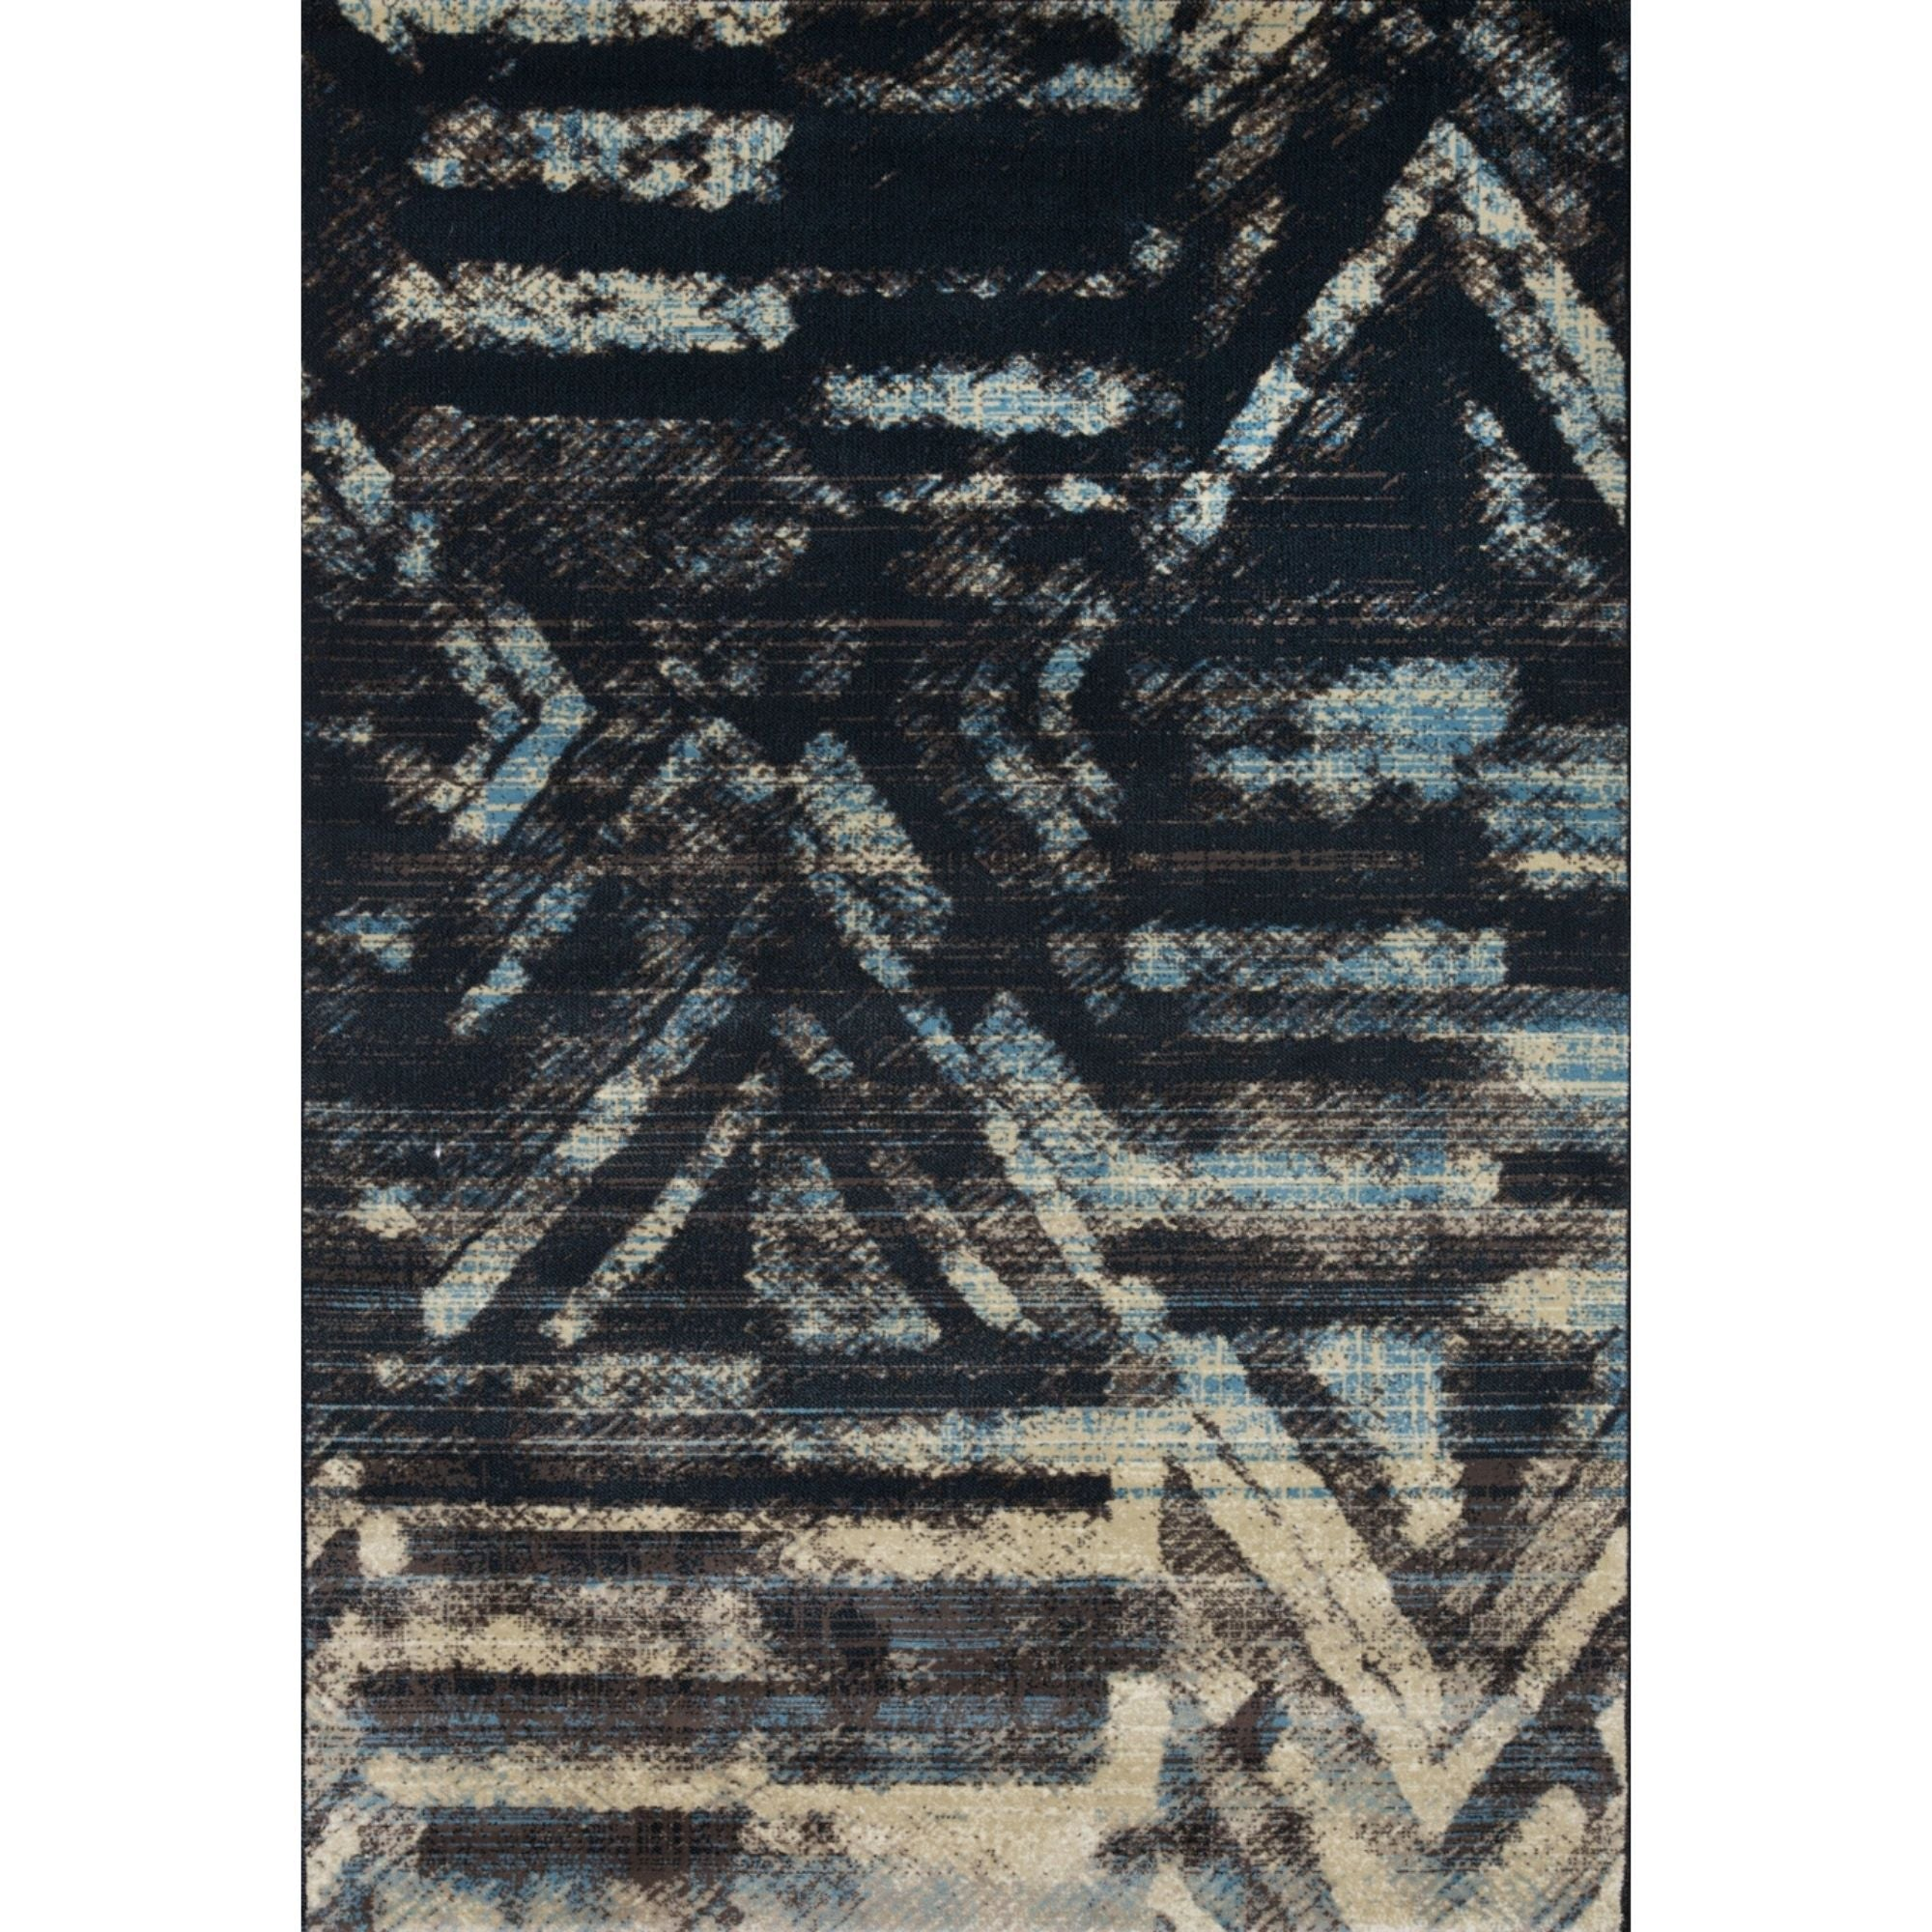 Rug - Aviation Black - 160 x 230 cm